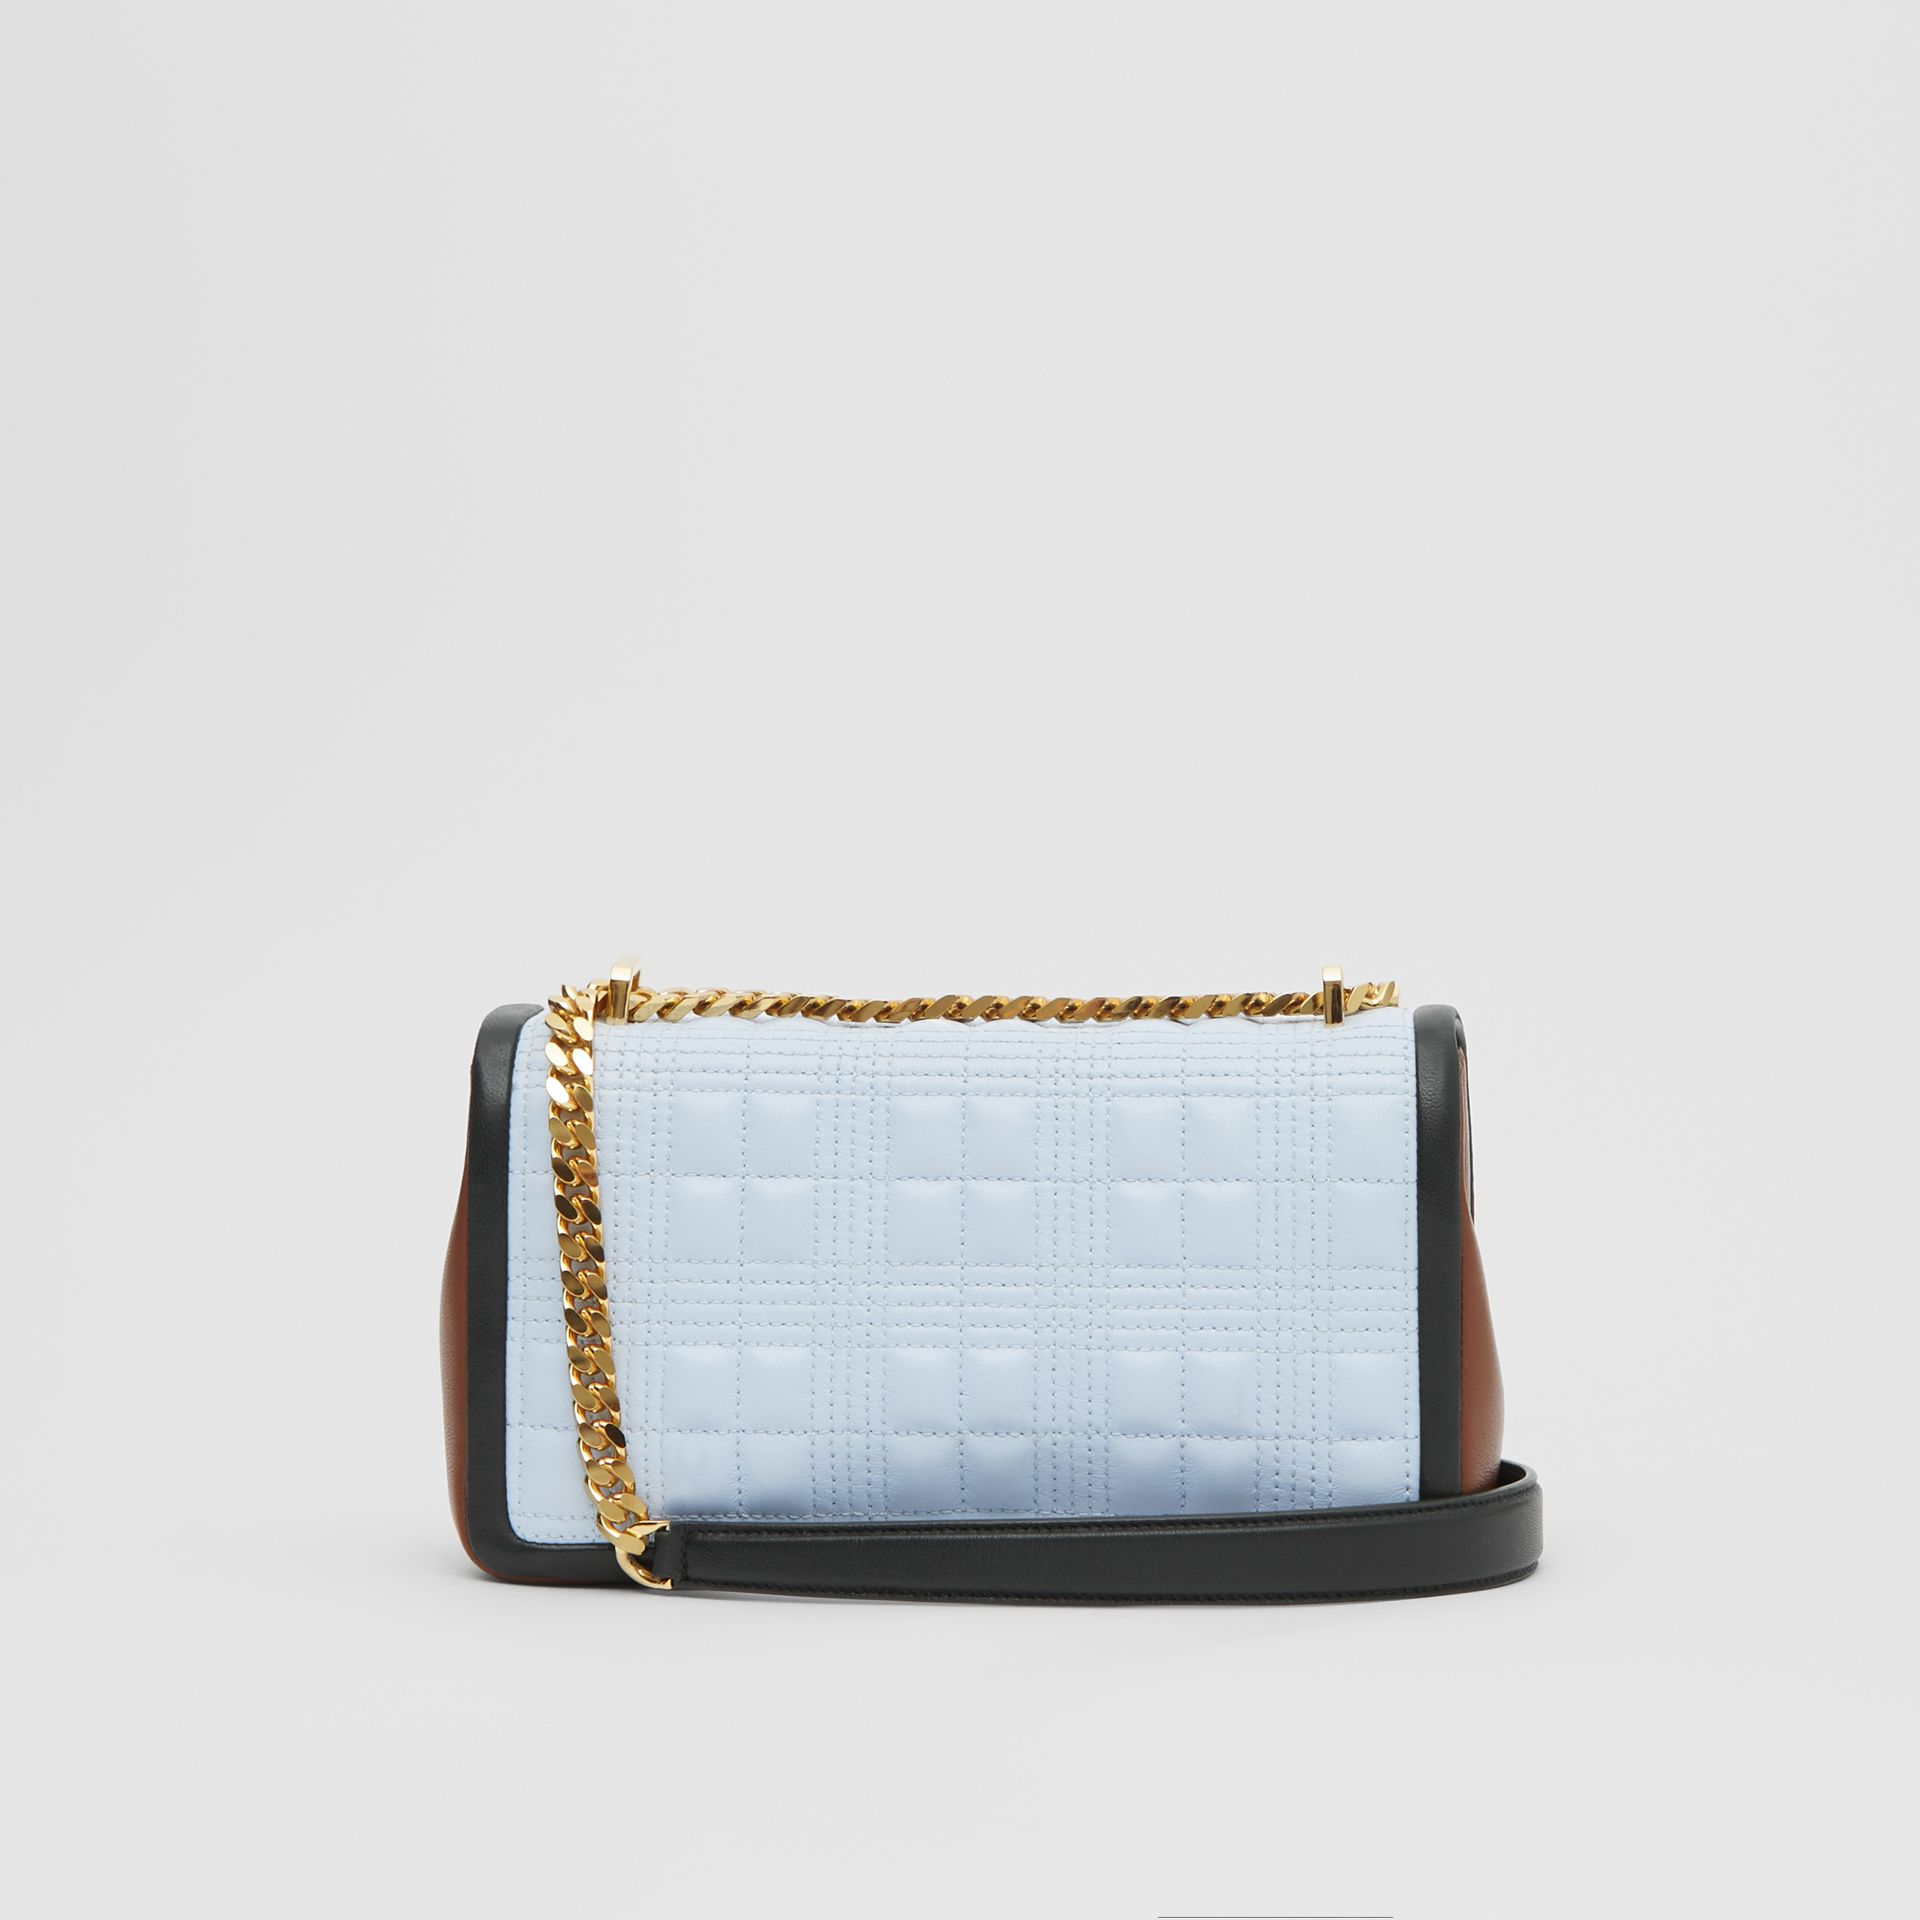 Small Quilted Tri-tone Lambskin Lola Bag in Pale Blue/dark Pine - Women | Burberry - gallery image 7